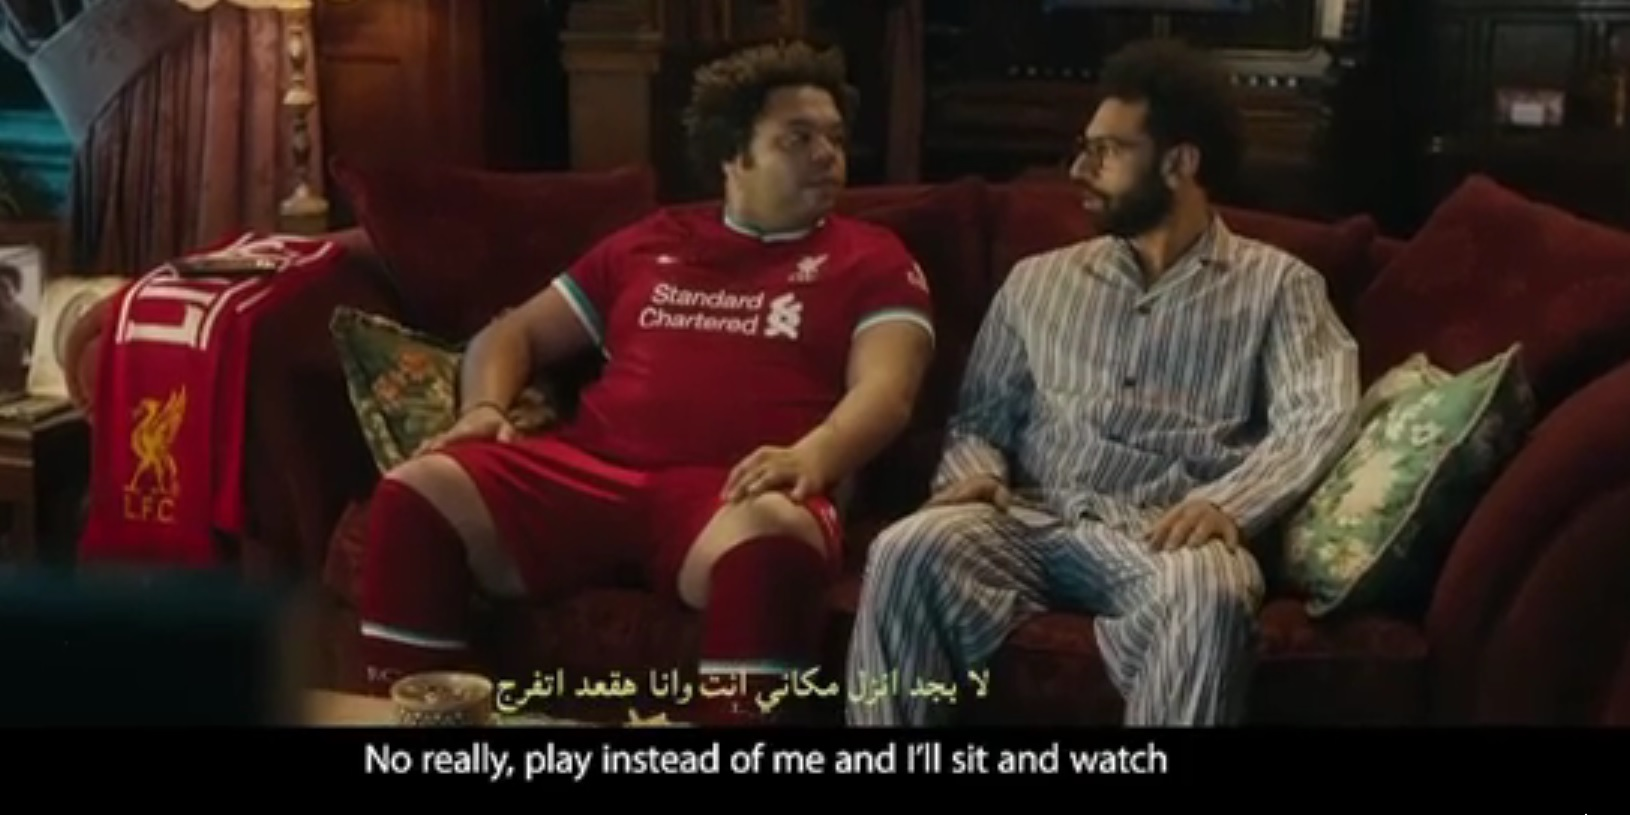 (Video) Salah stars in hilarious new ad poking fun at social media know-it-alls